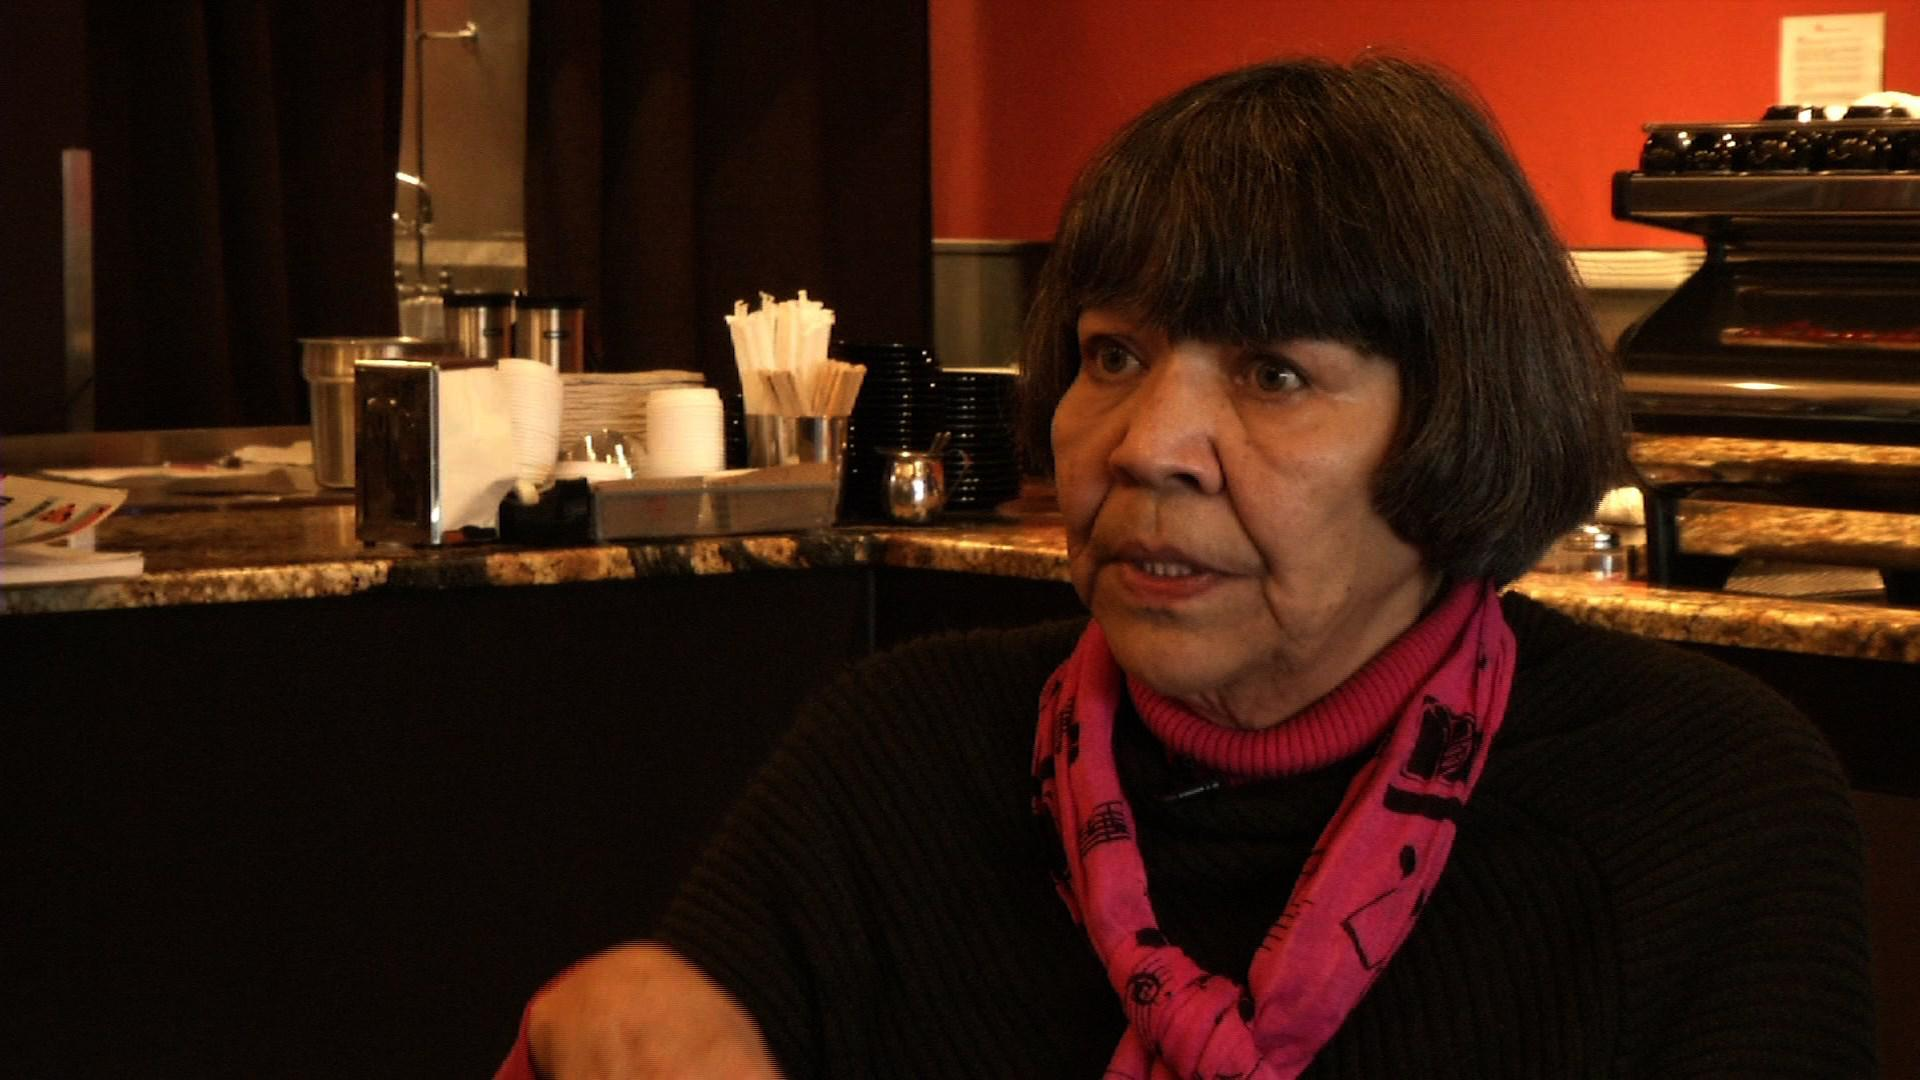 Yup'ik and Gwich'in political activist Desa Jacobsson died at age 69 in Anchorage after a lifetime of raising awareness for Native issues, including sexual violence against Native women. (Photo courtesy KTVA PENDING APPROVAL)